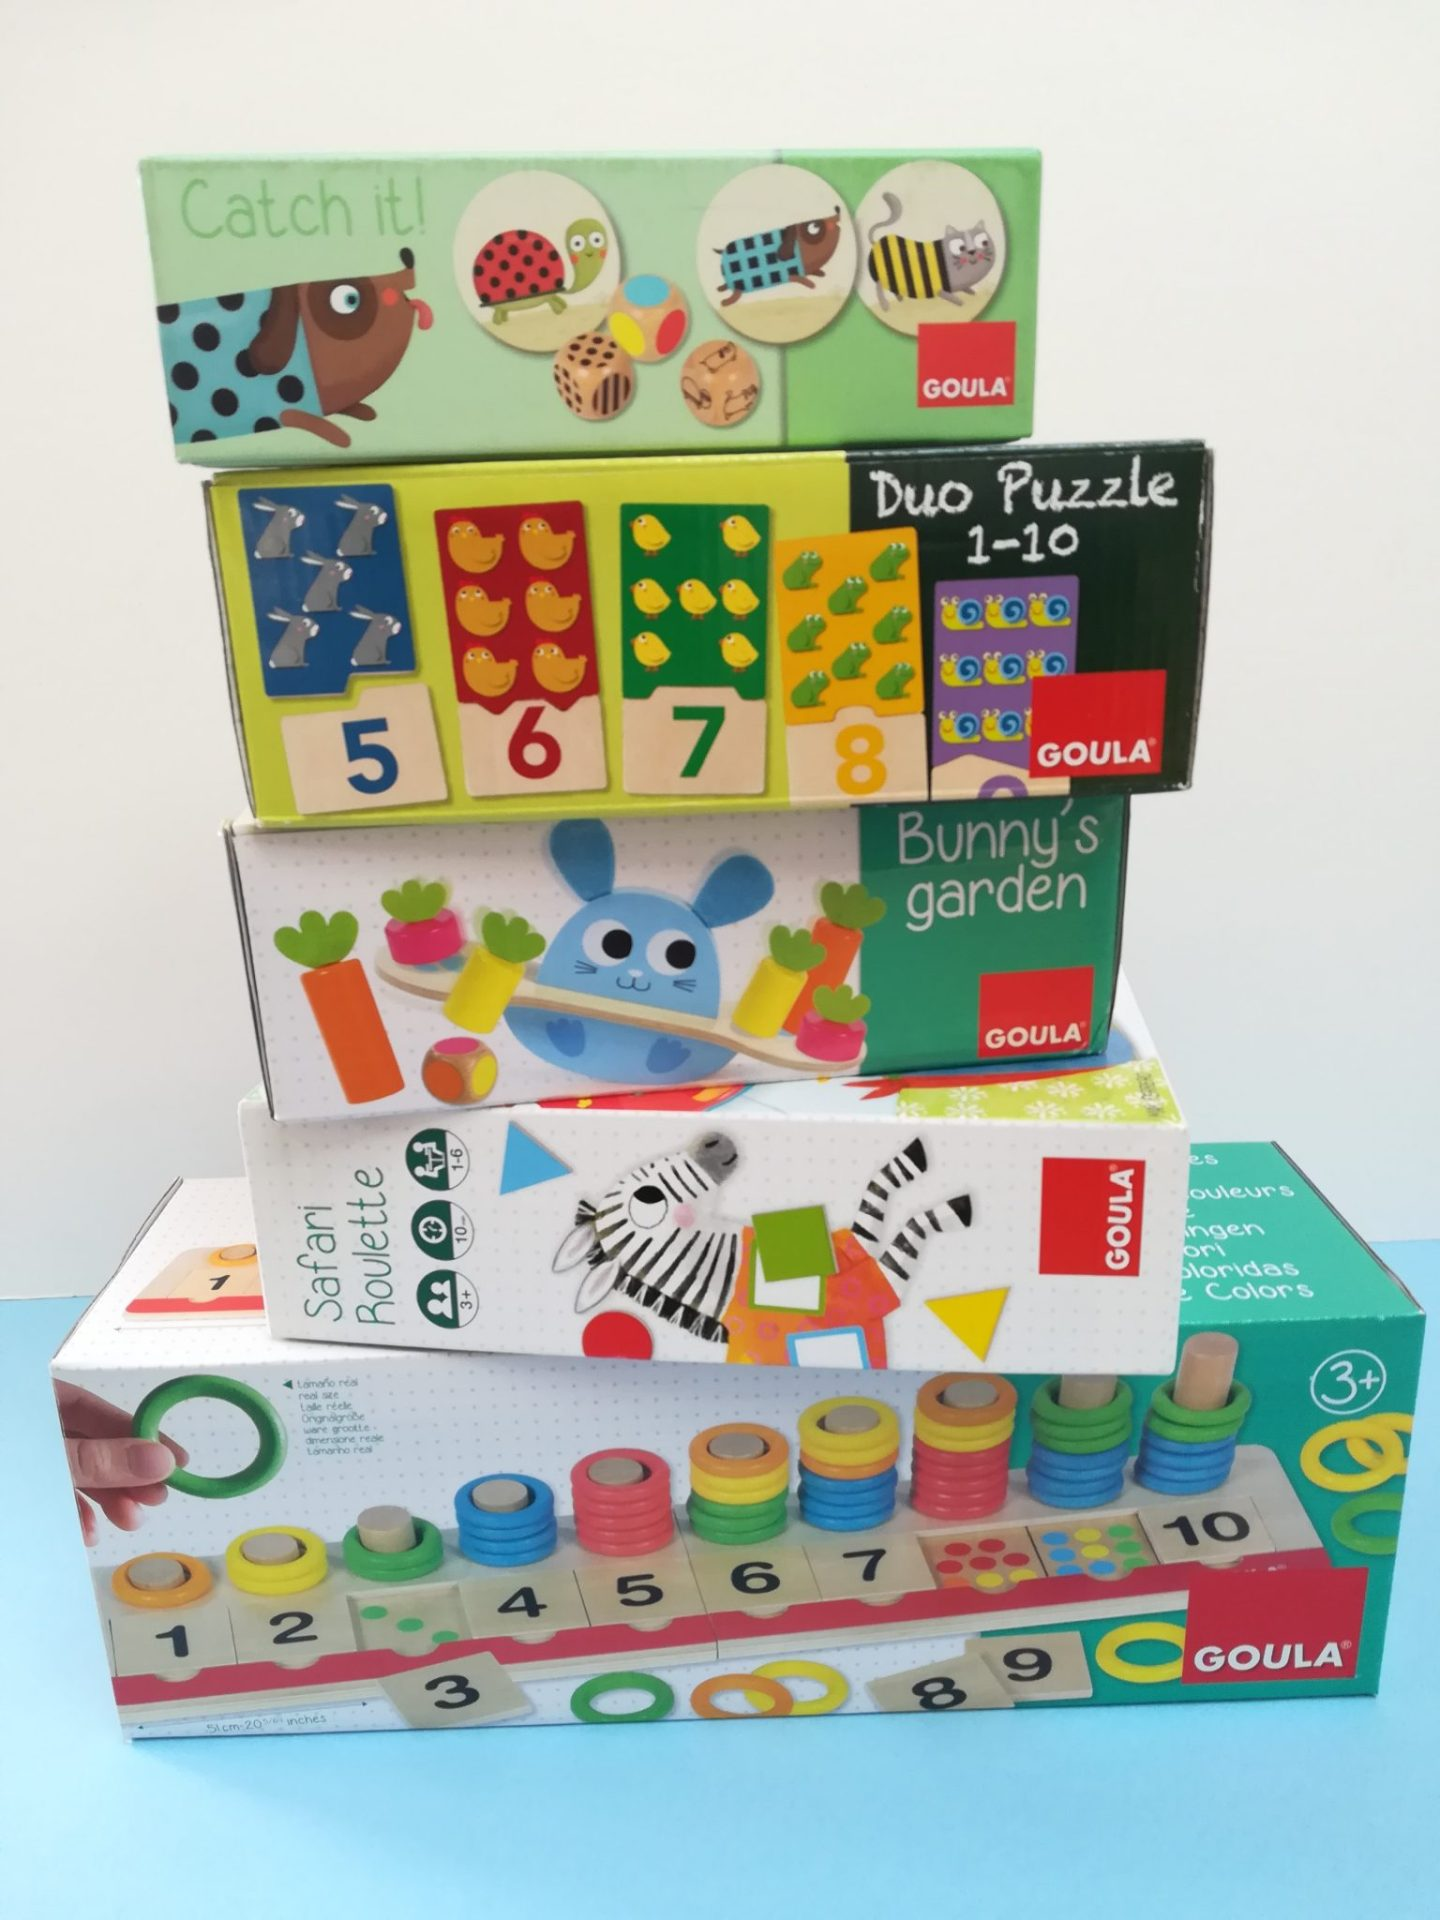 Goula Range from Jumbo Games